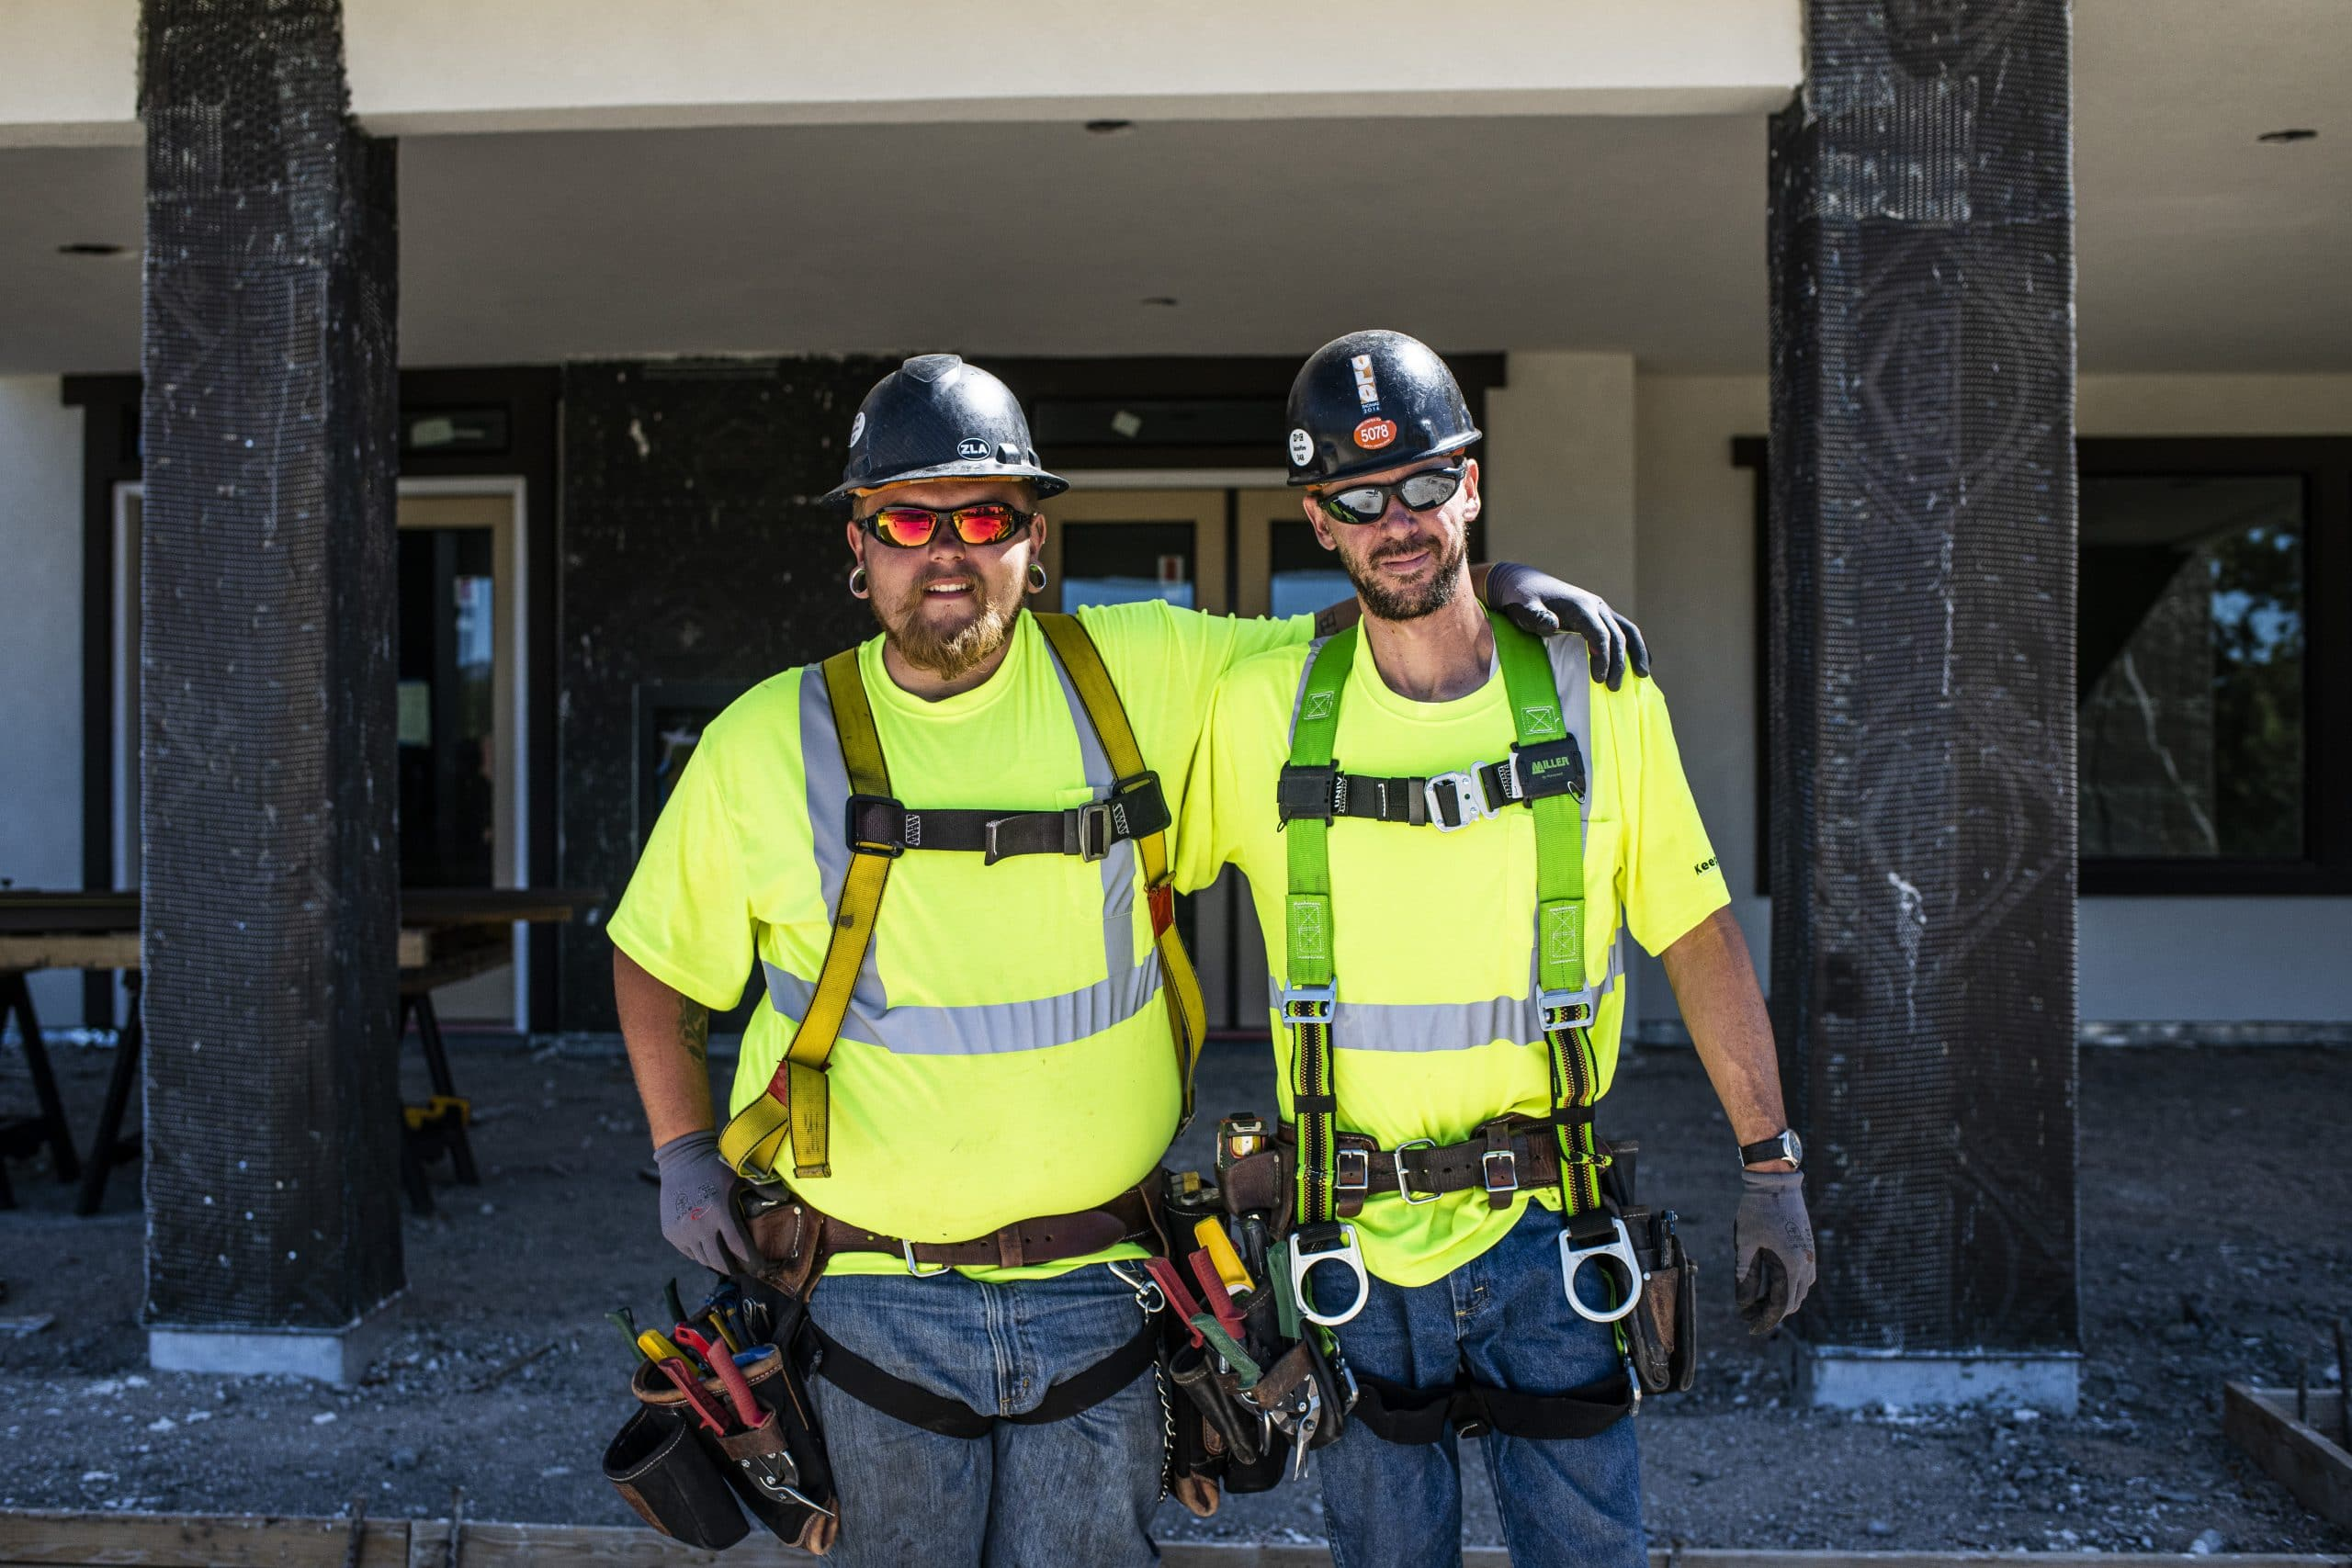 Two roofing employees standing together